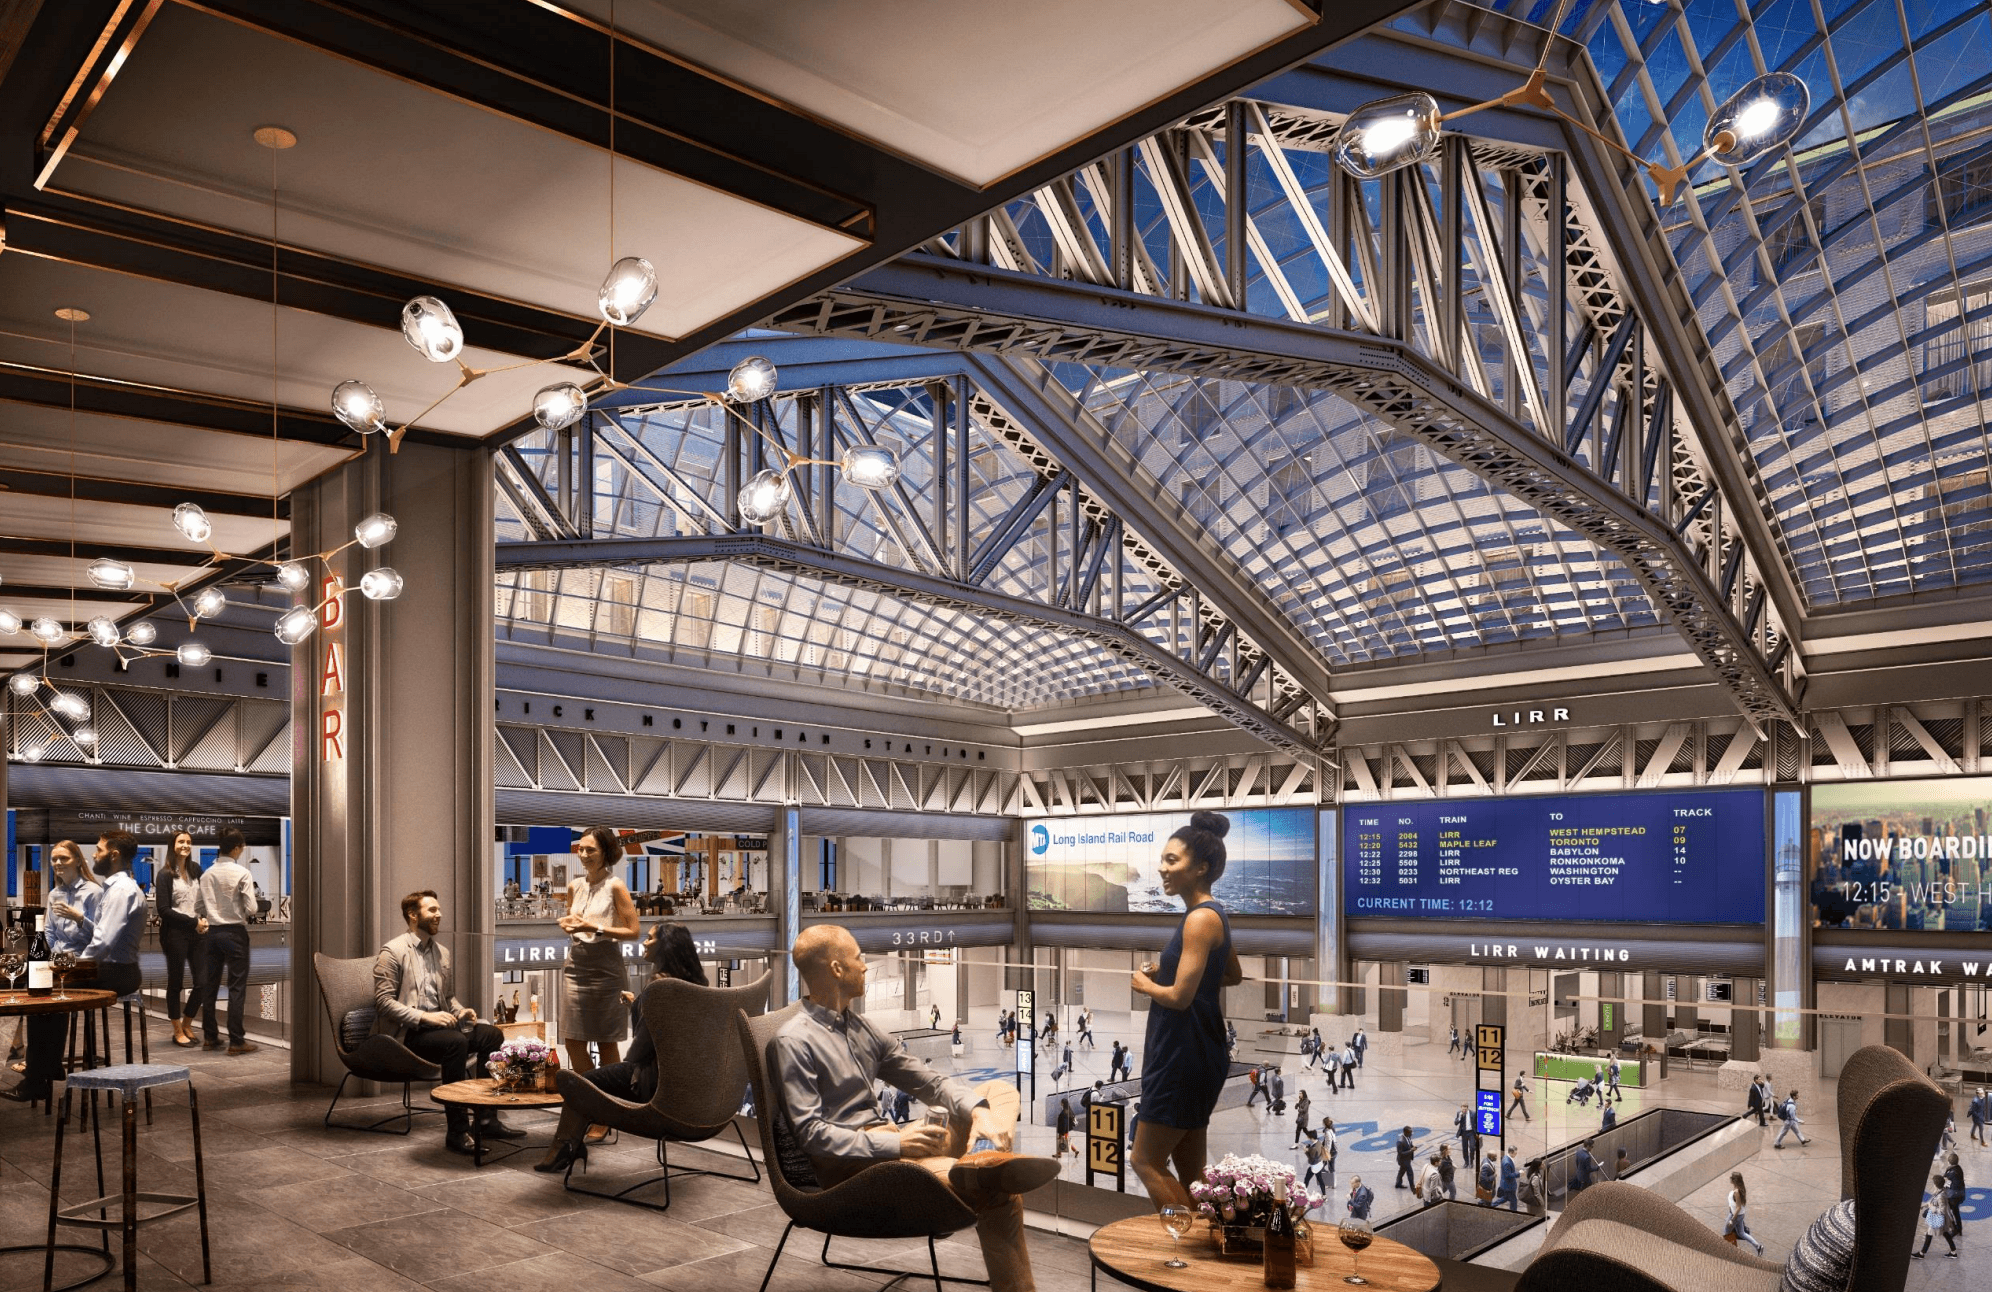 Construction To Finally Begin On The New Penn Station